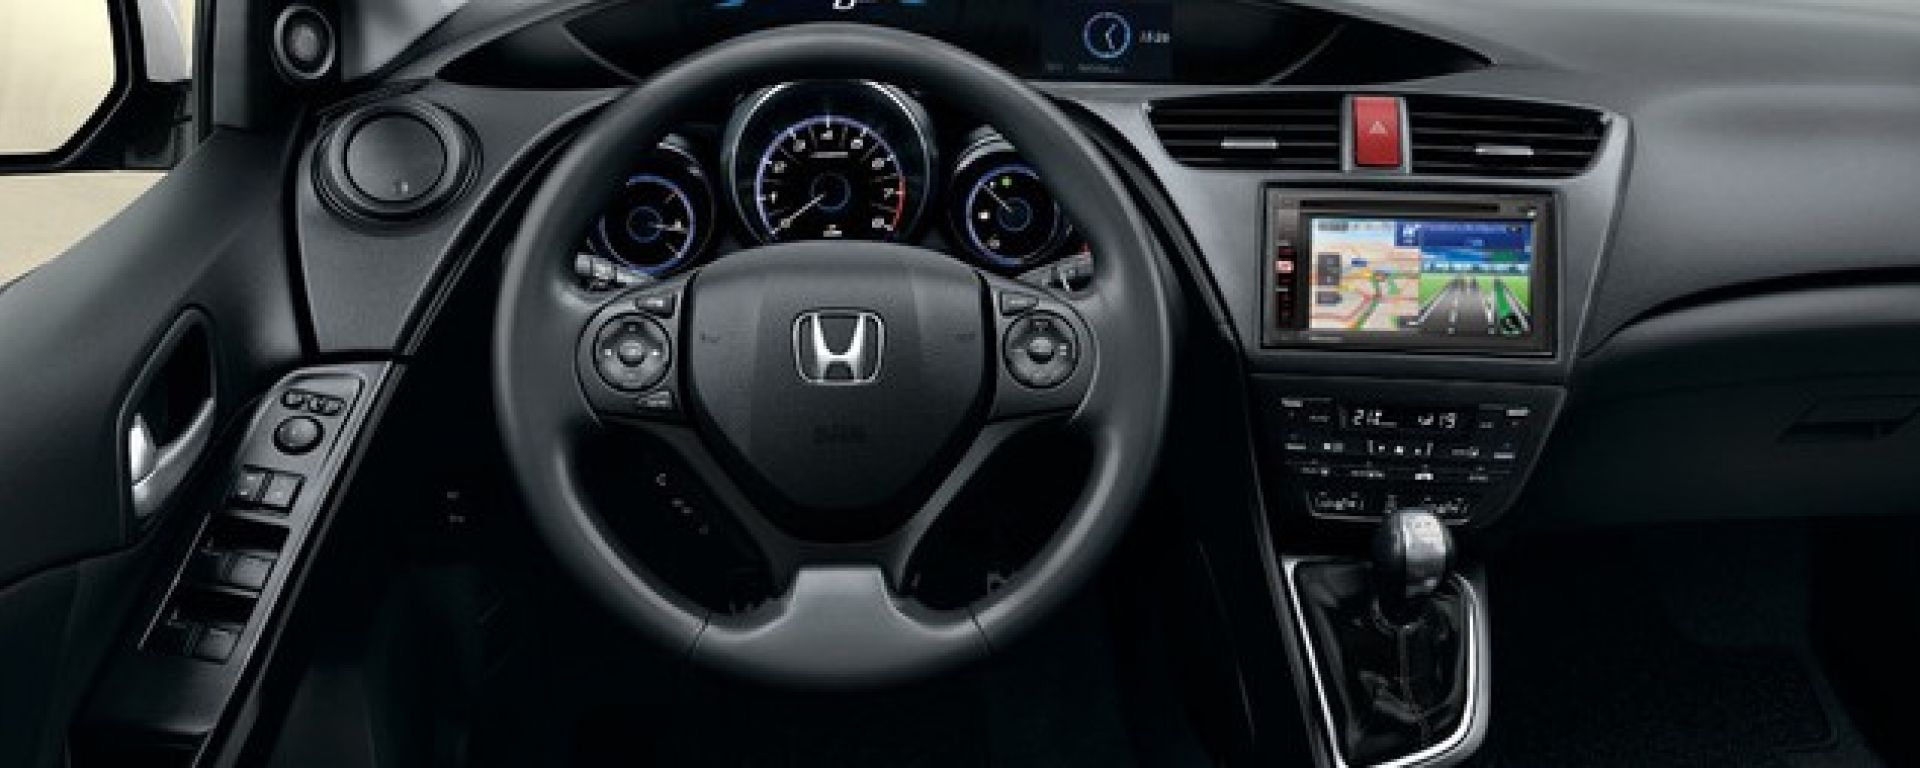 Honda Civic YouTech